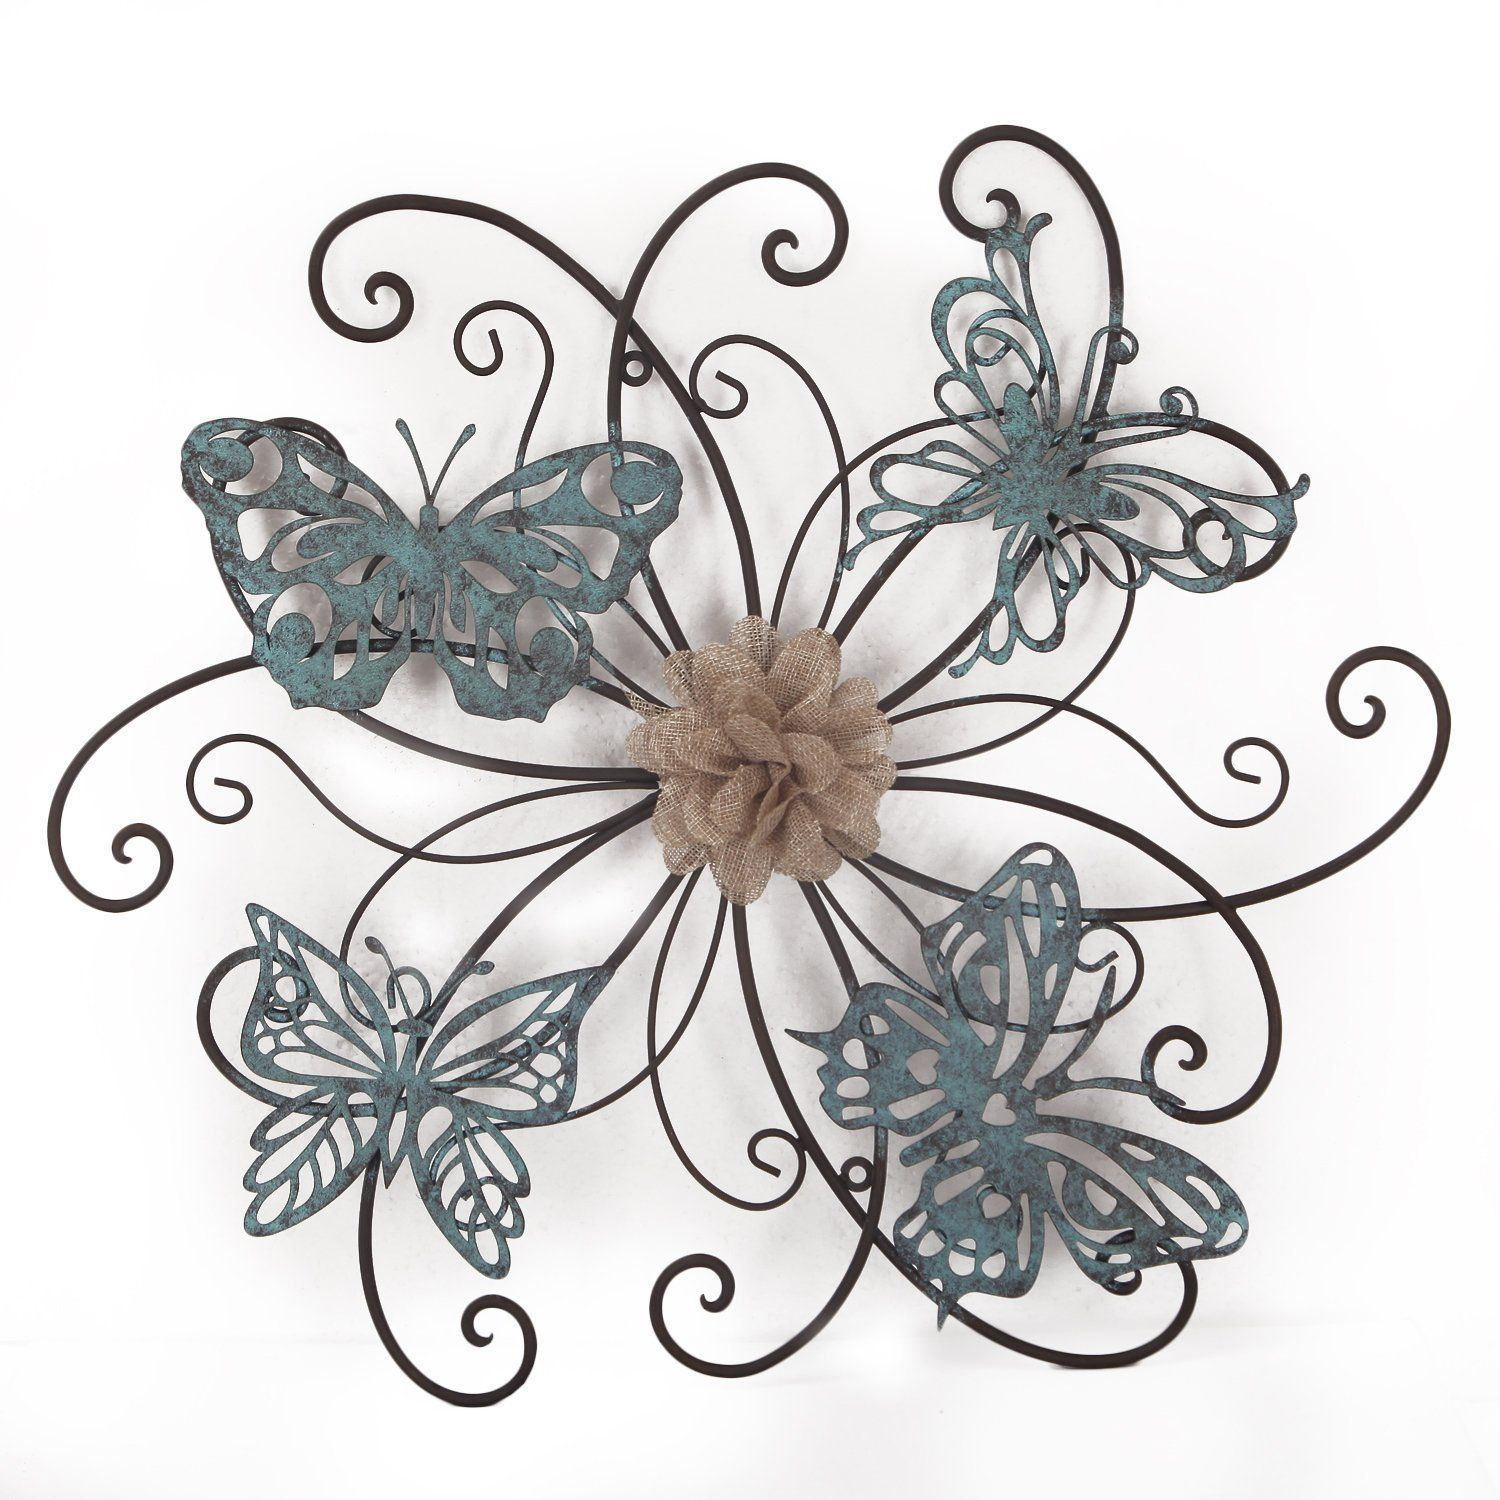 Adeco Flower And Butterfly Urban Design Metal Wall Decor For Regarding Flower And Butterfly Urban Design Metal Wall Decor (View 2 of 30)